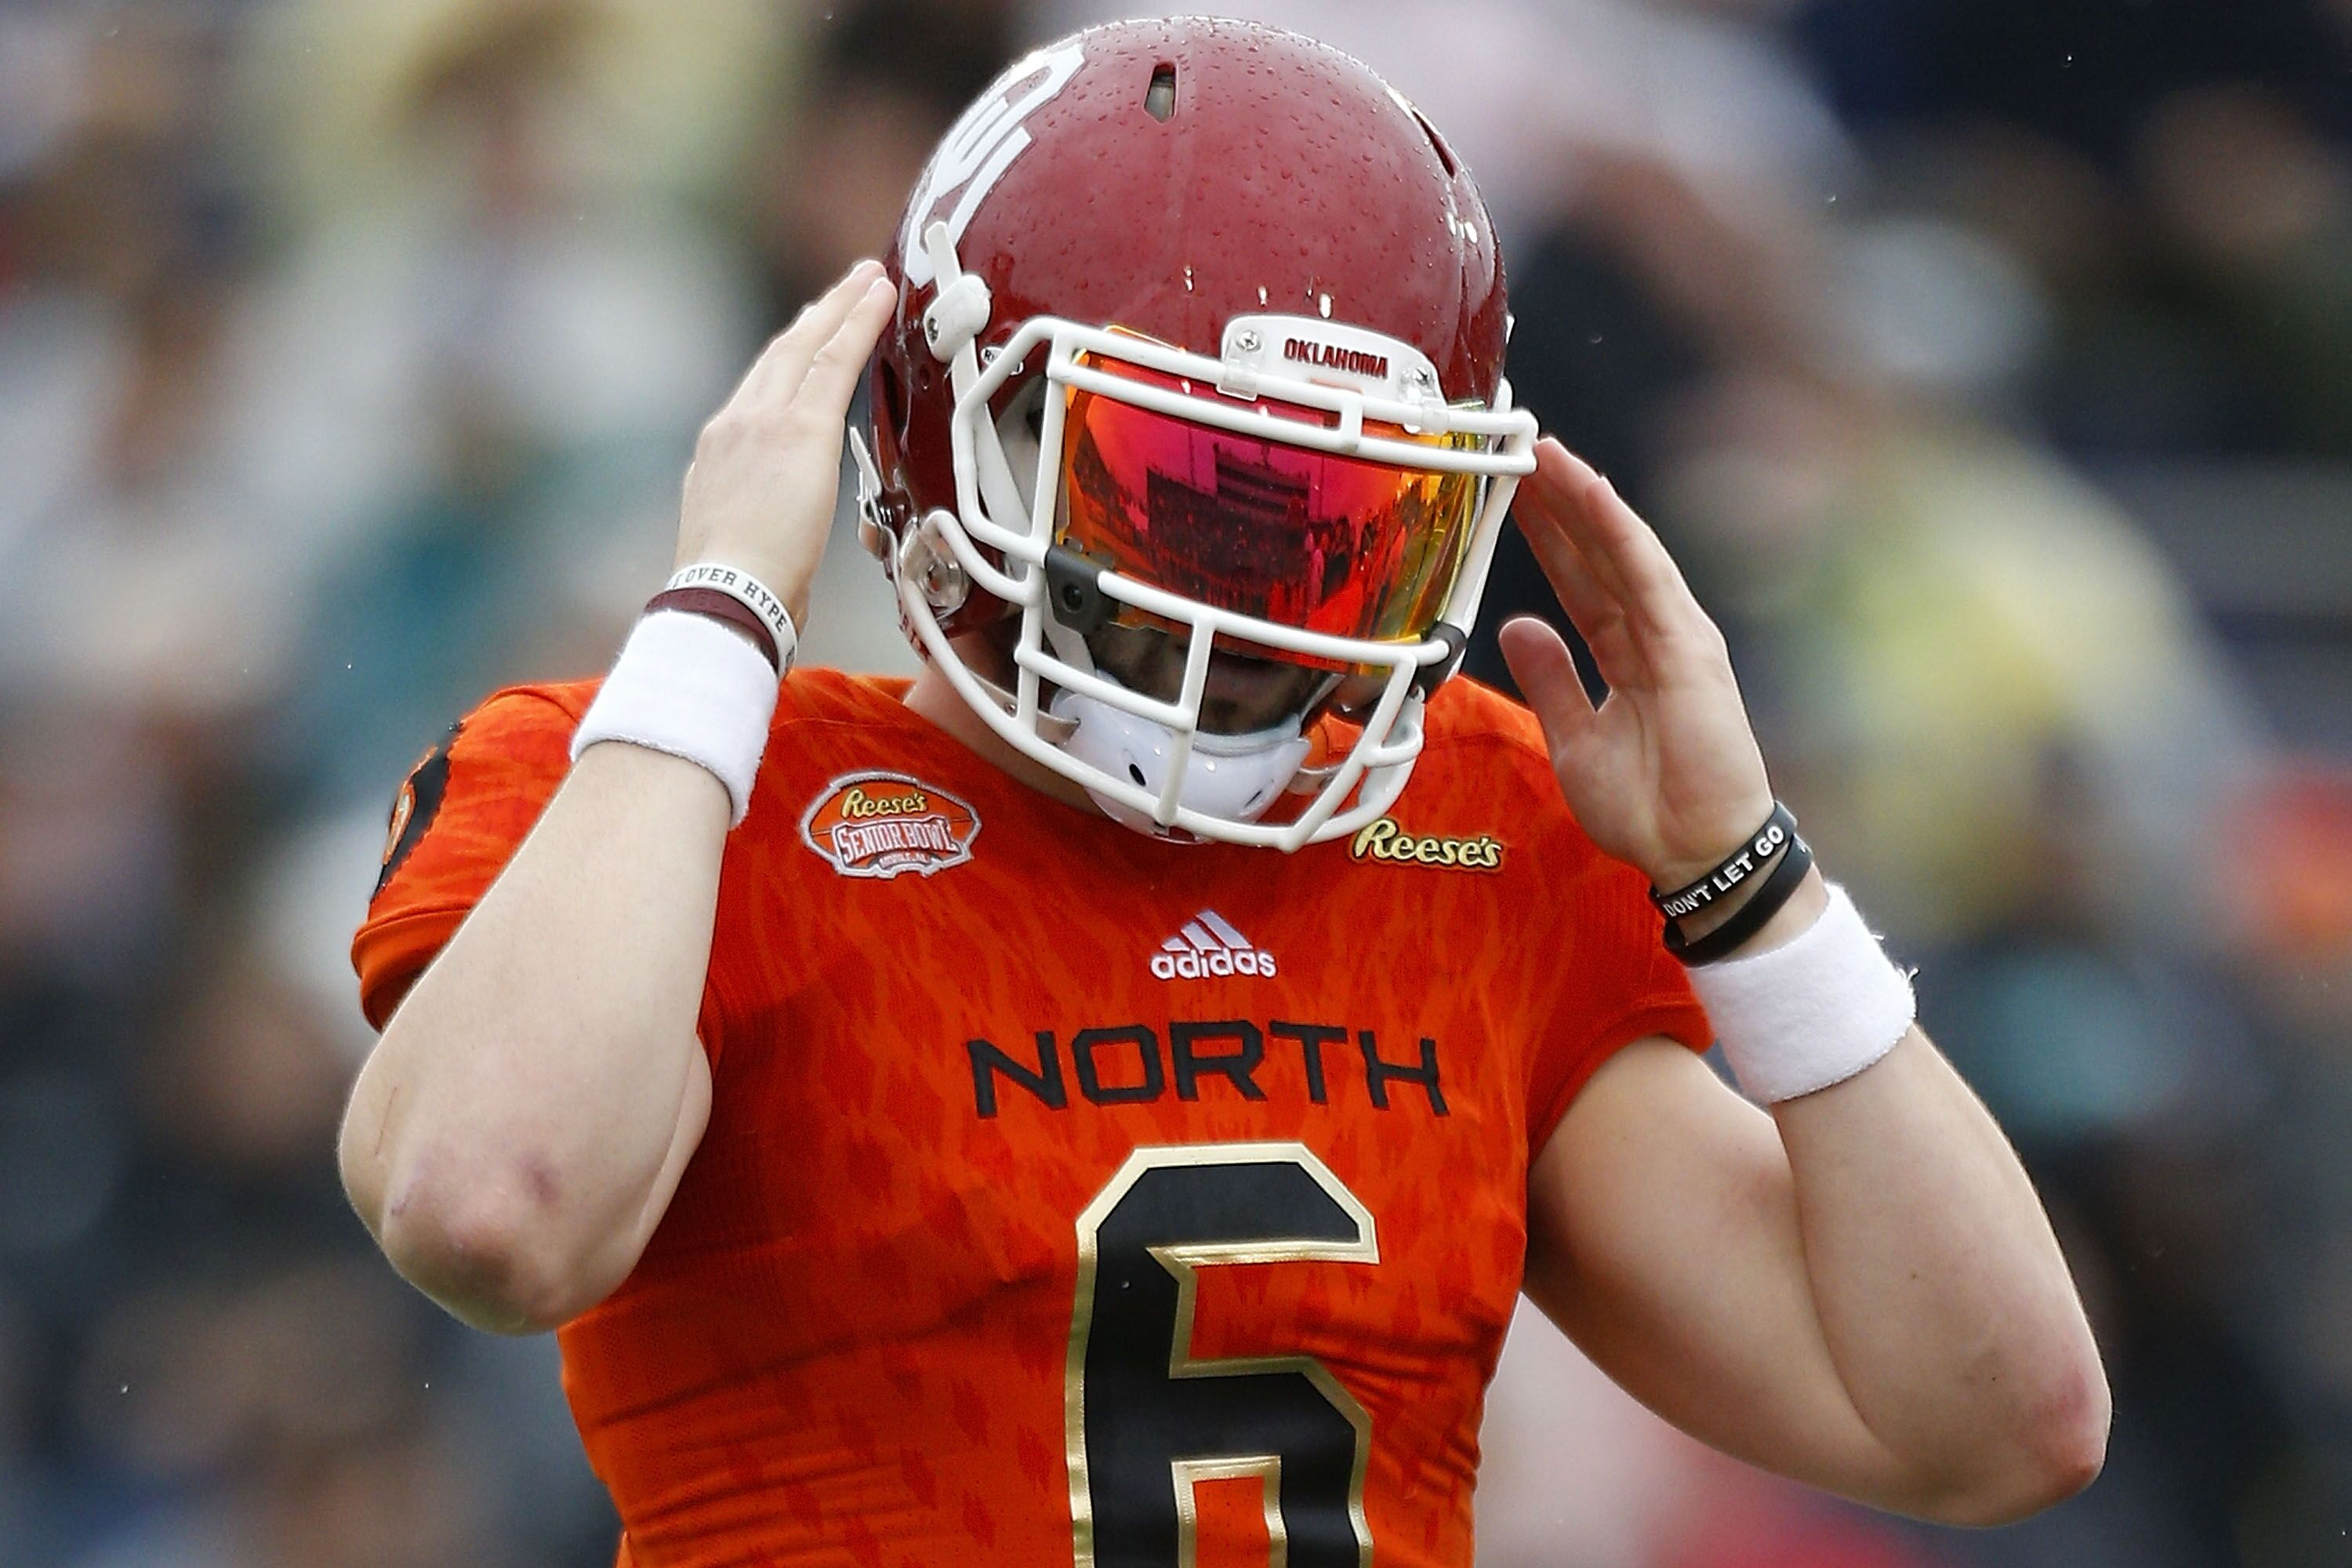 newest 3014b 907e2 Cleveland Browns Baker Mayfield: a call that (never) happened.